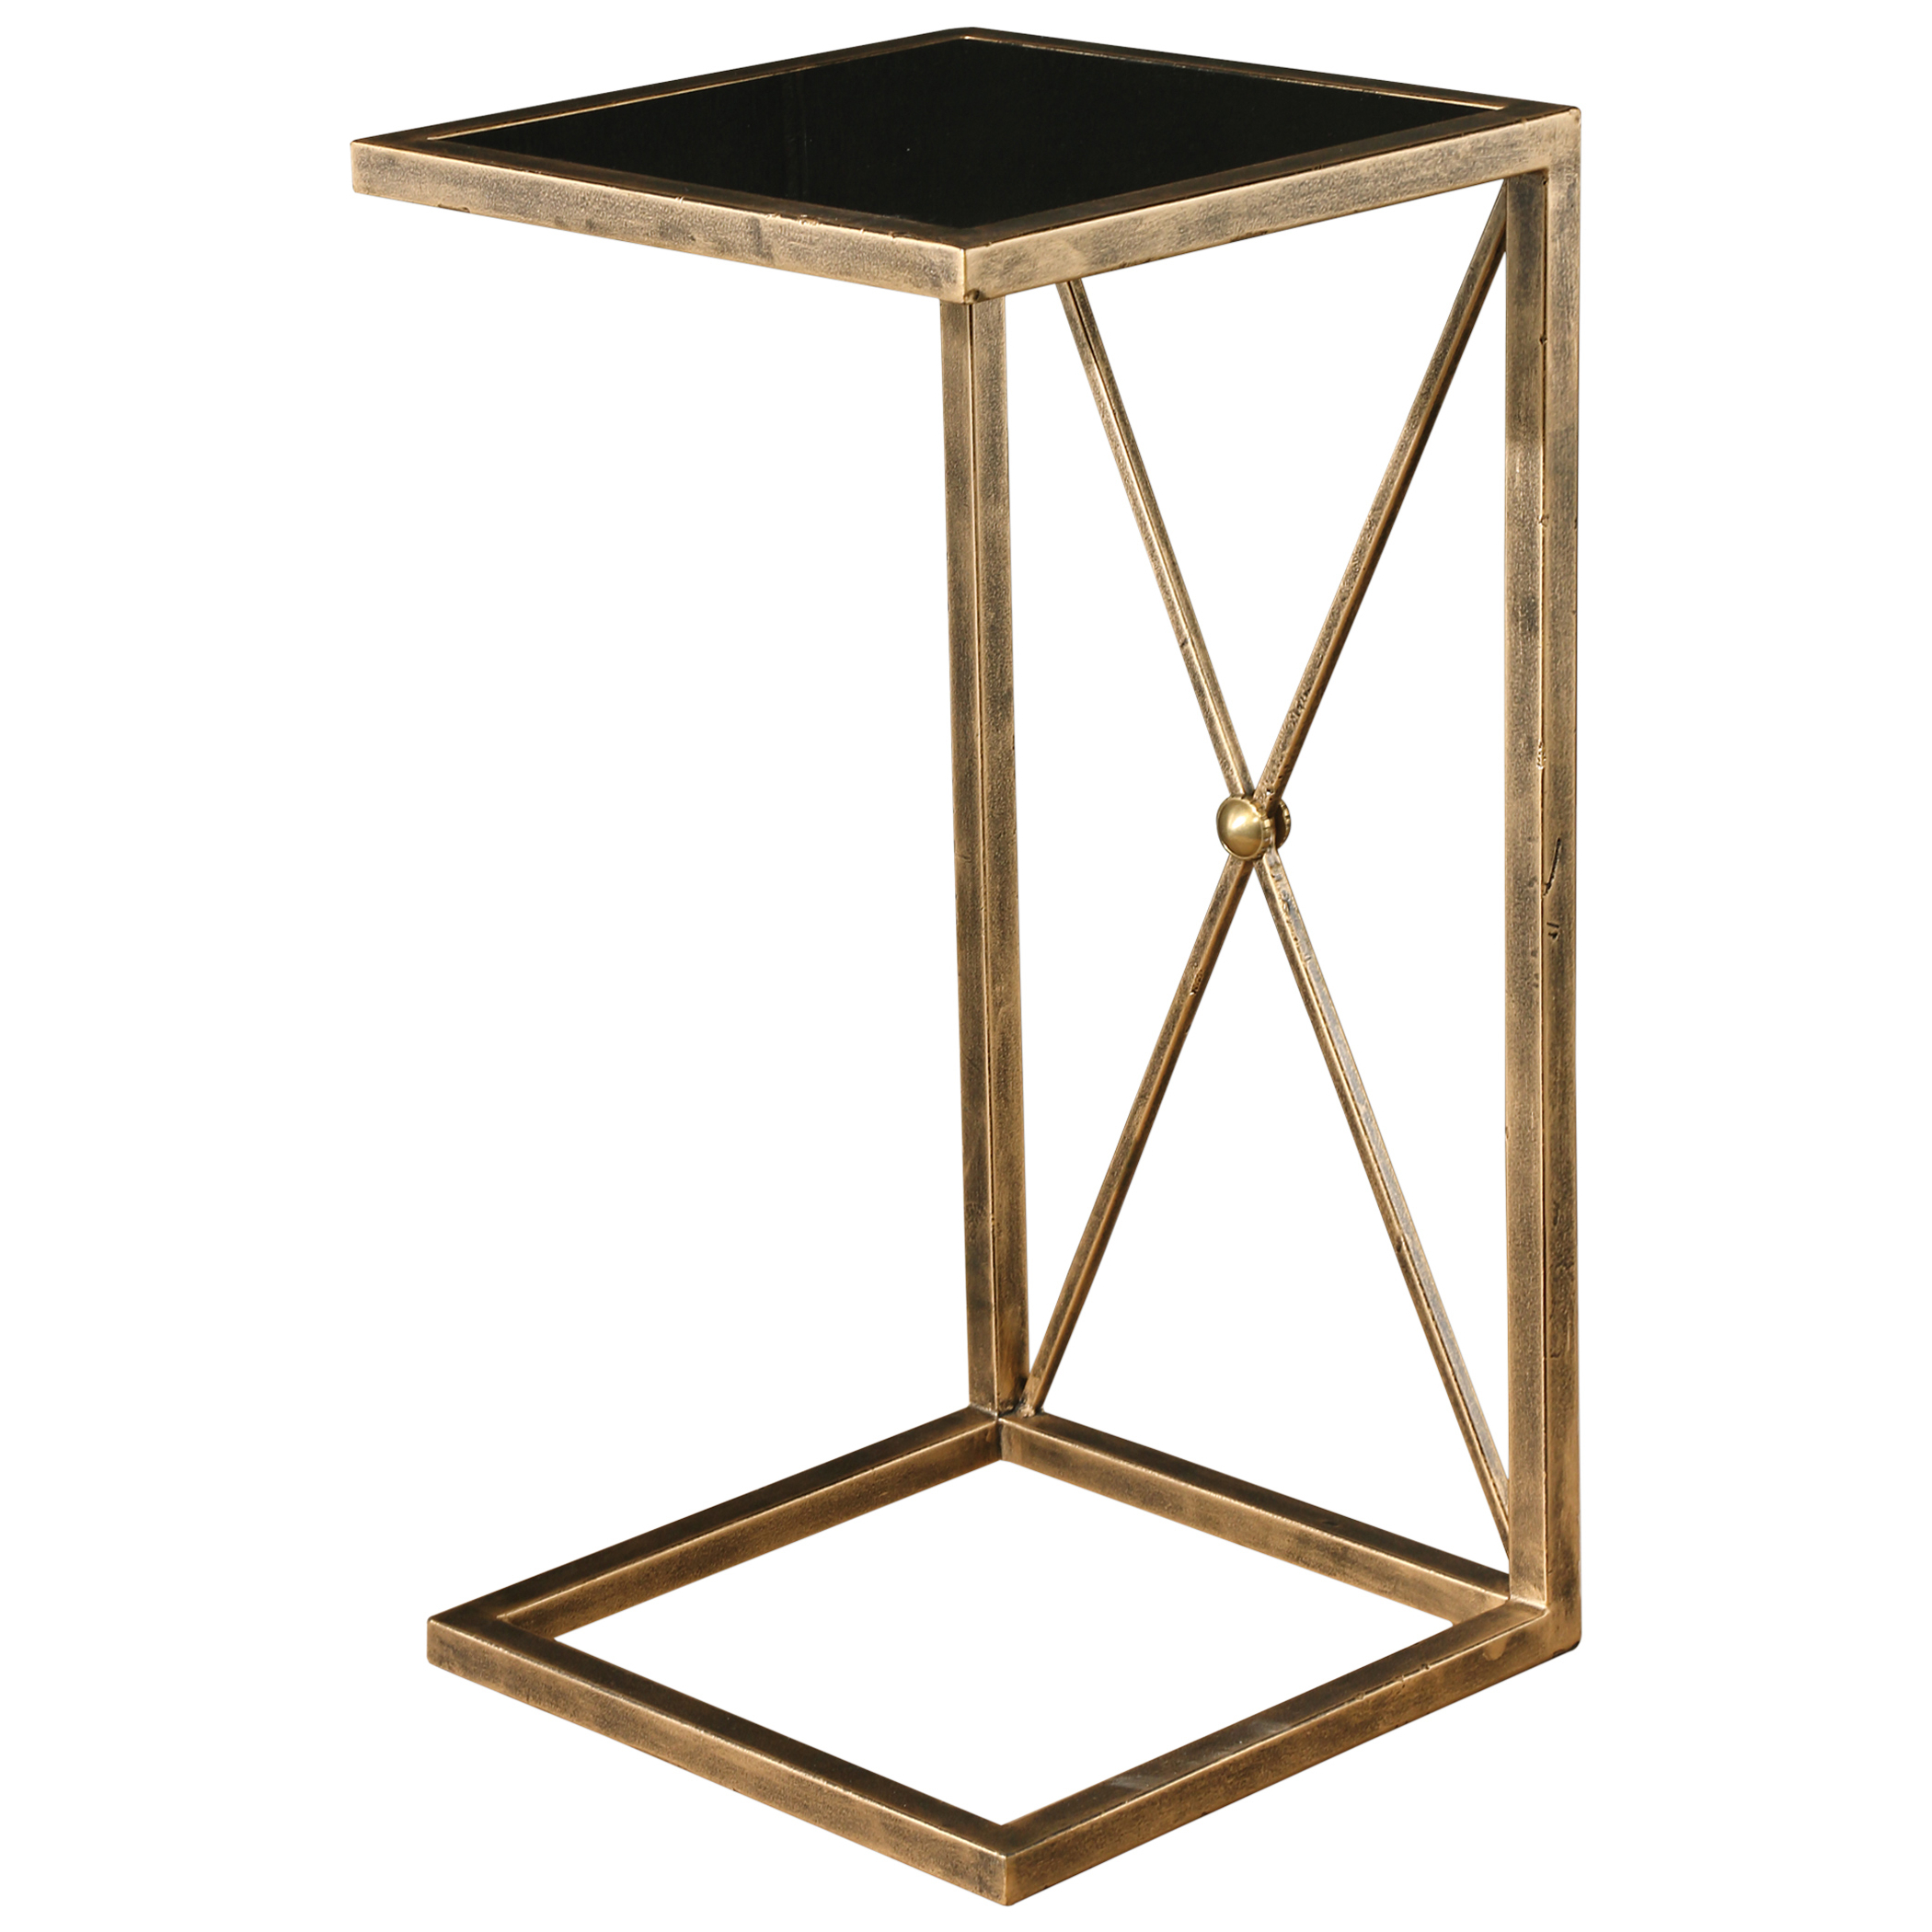 Fresh Cut Side Tables For Well Known Designer Side & End Tables – Eclectic Side & End Tables (View 6 of 20)